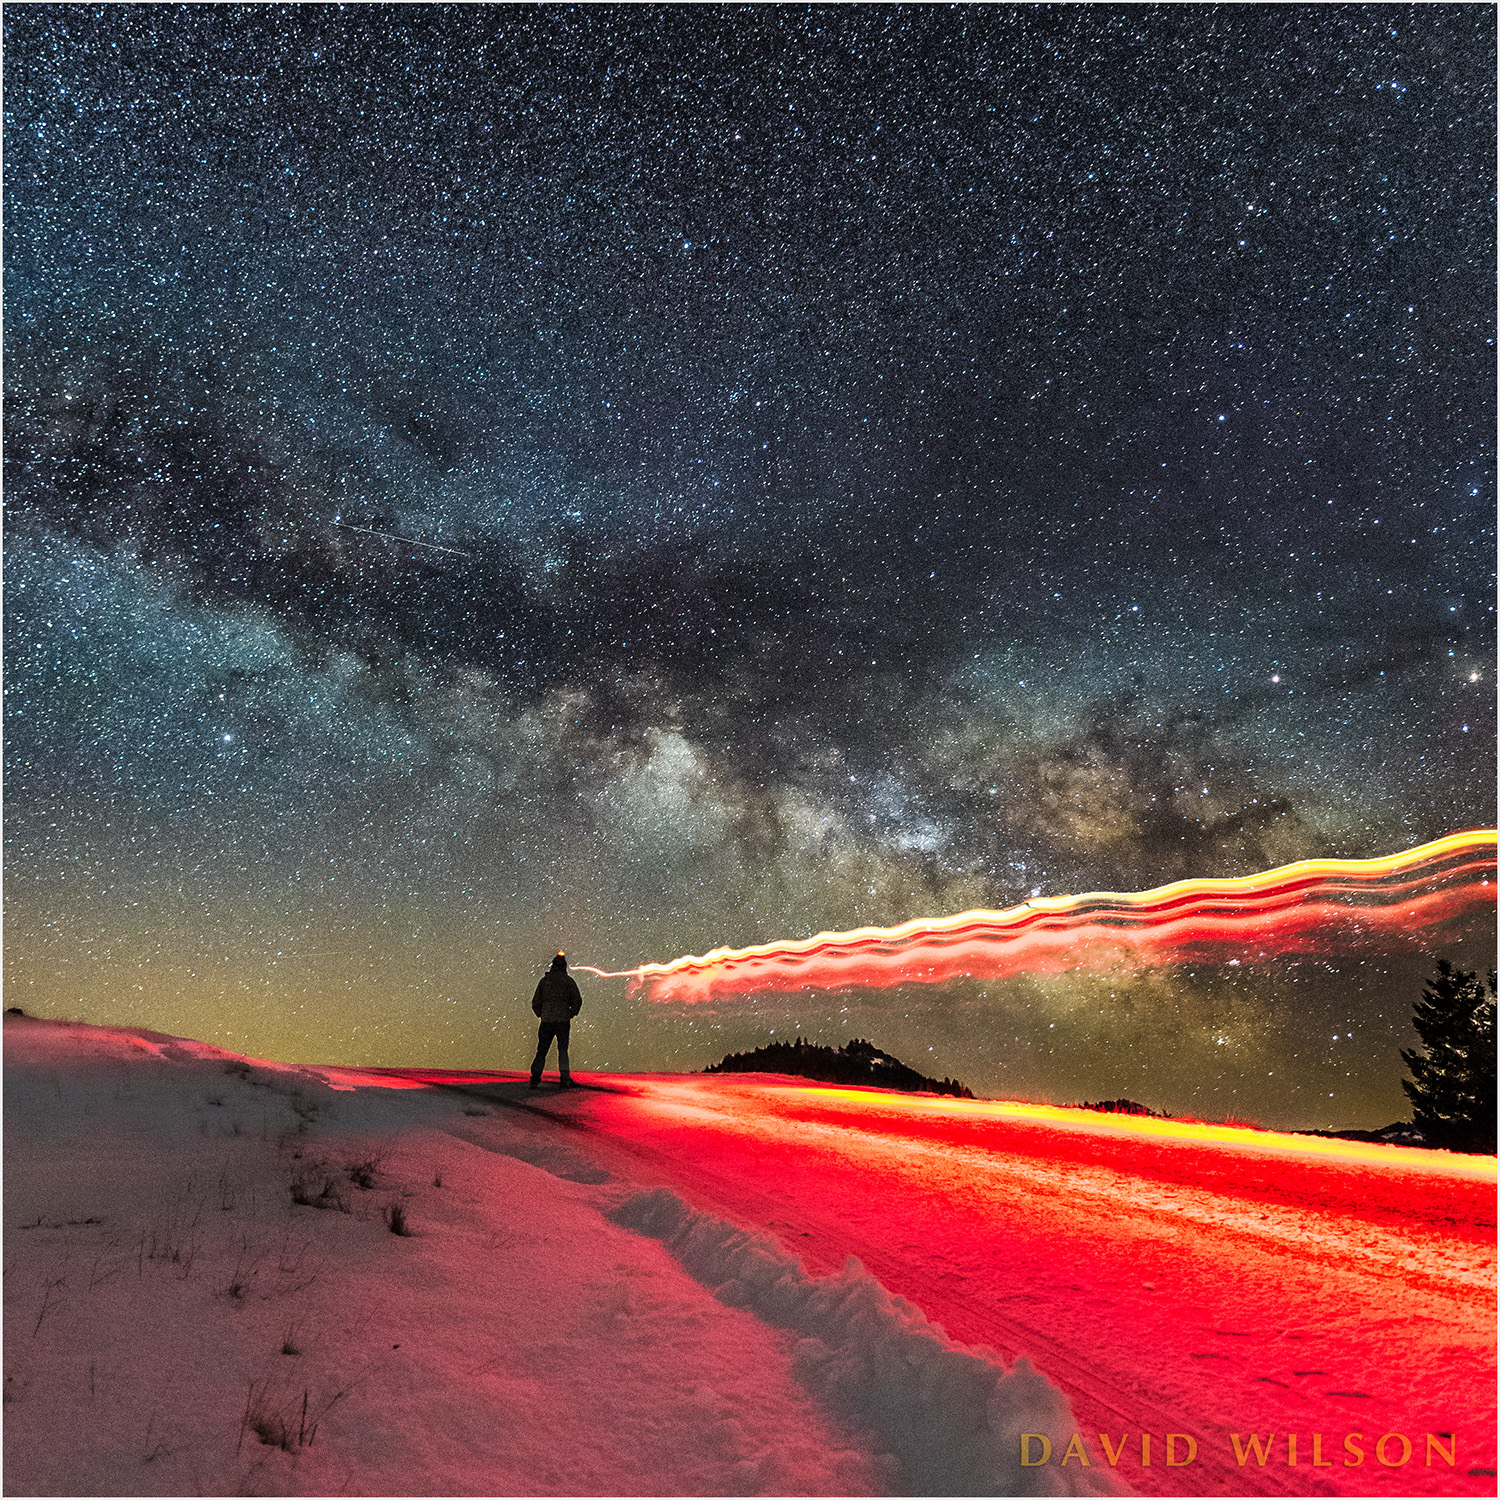 Self Portrait: Playing with light beneath the Galactic Core. Kneeland, Humboldt County, California